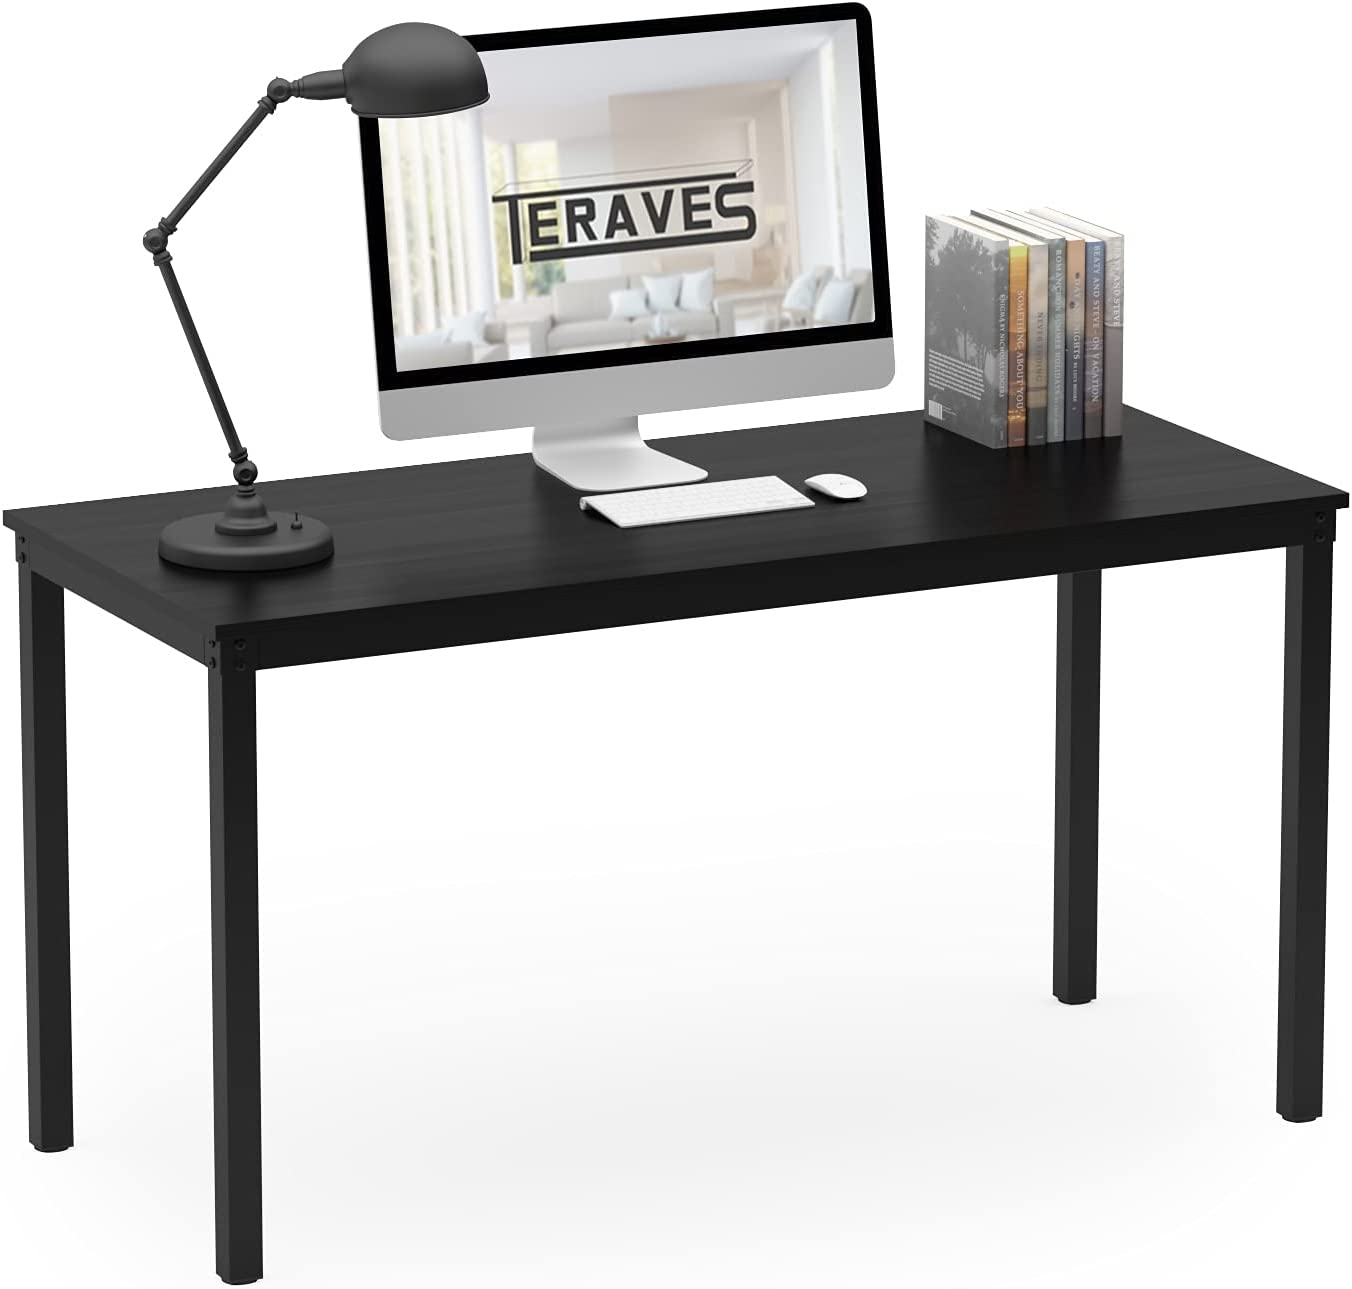 """Teraves Computer Desk/Dining Table Office Desk Sturdy Writing Workstation for Home Office(47.24"""", Black)"""